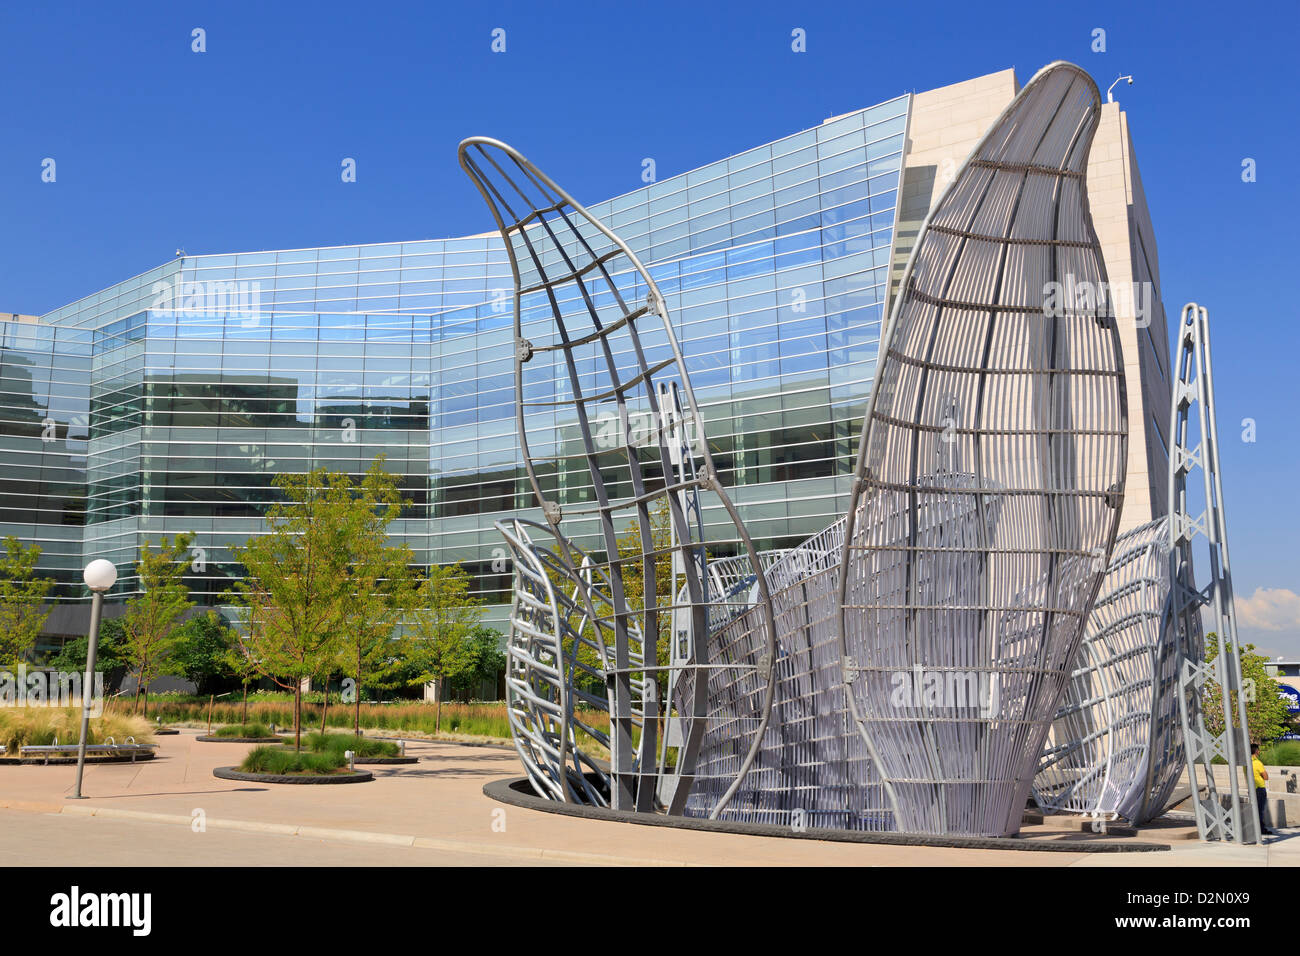 Lindsey-Flanigan Courthouse, Denver, Colorado, United States of America, North America - Stock Image